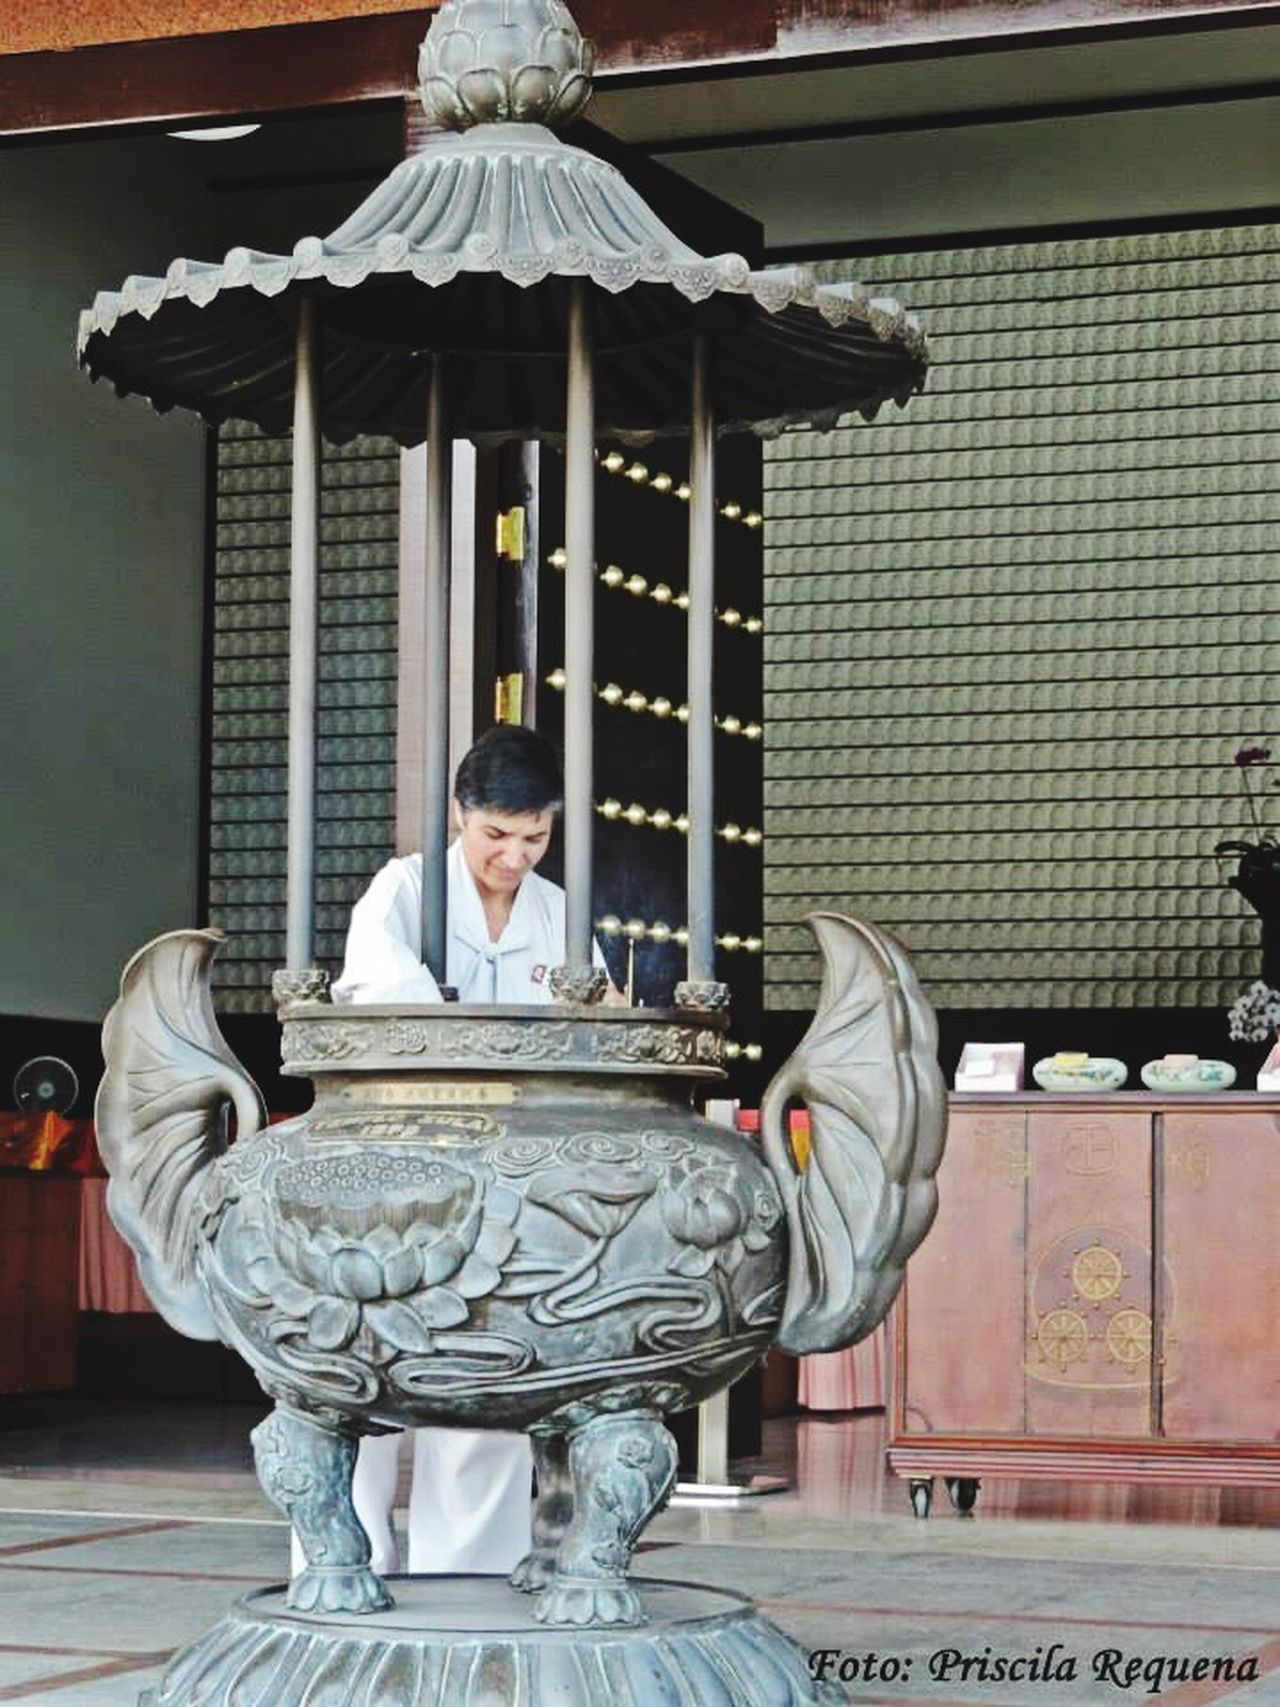 My Favorite Photo Canon Photography In Motion Photographic Memory Meditation Tranquility Buddhist Temple Budism Japan Photography Bestoftheday Beautiful Place Pretty Photos Love Building Energy Place Photoshoot Beautiful Day Photographer Photos Around You Photooftheday Prettygood Photography Pretty♡ Culture